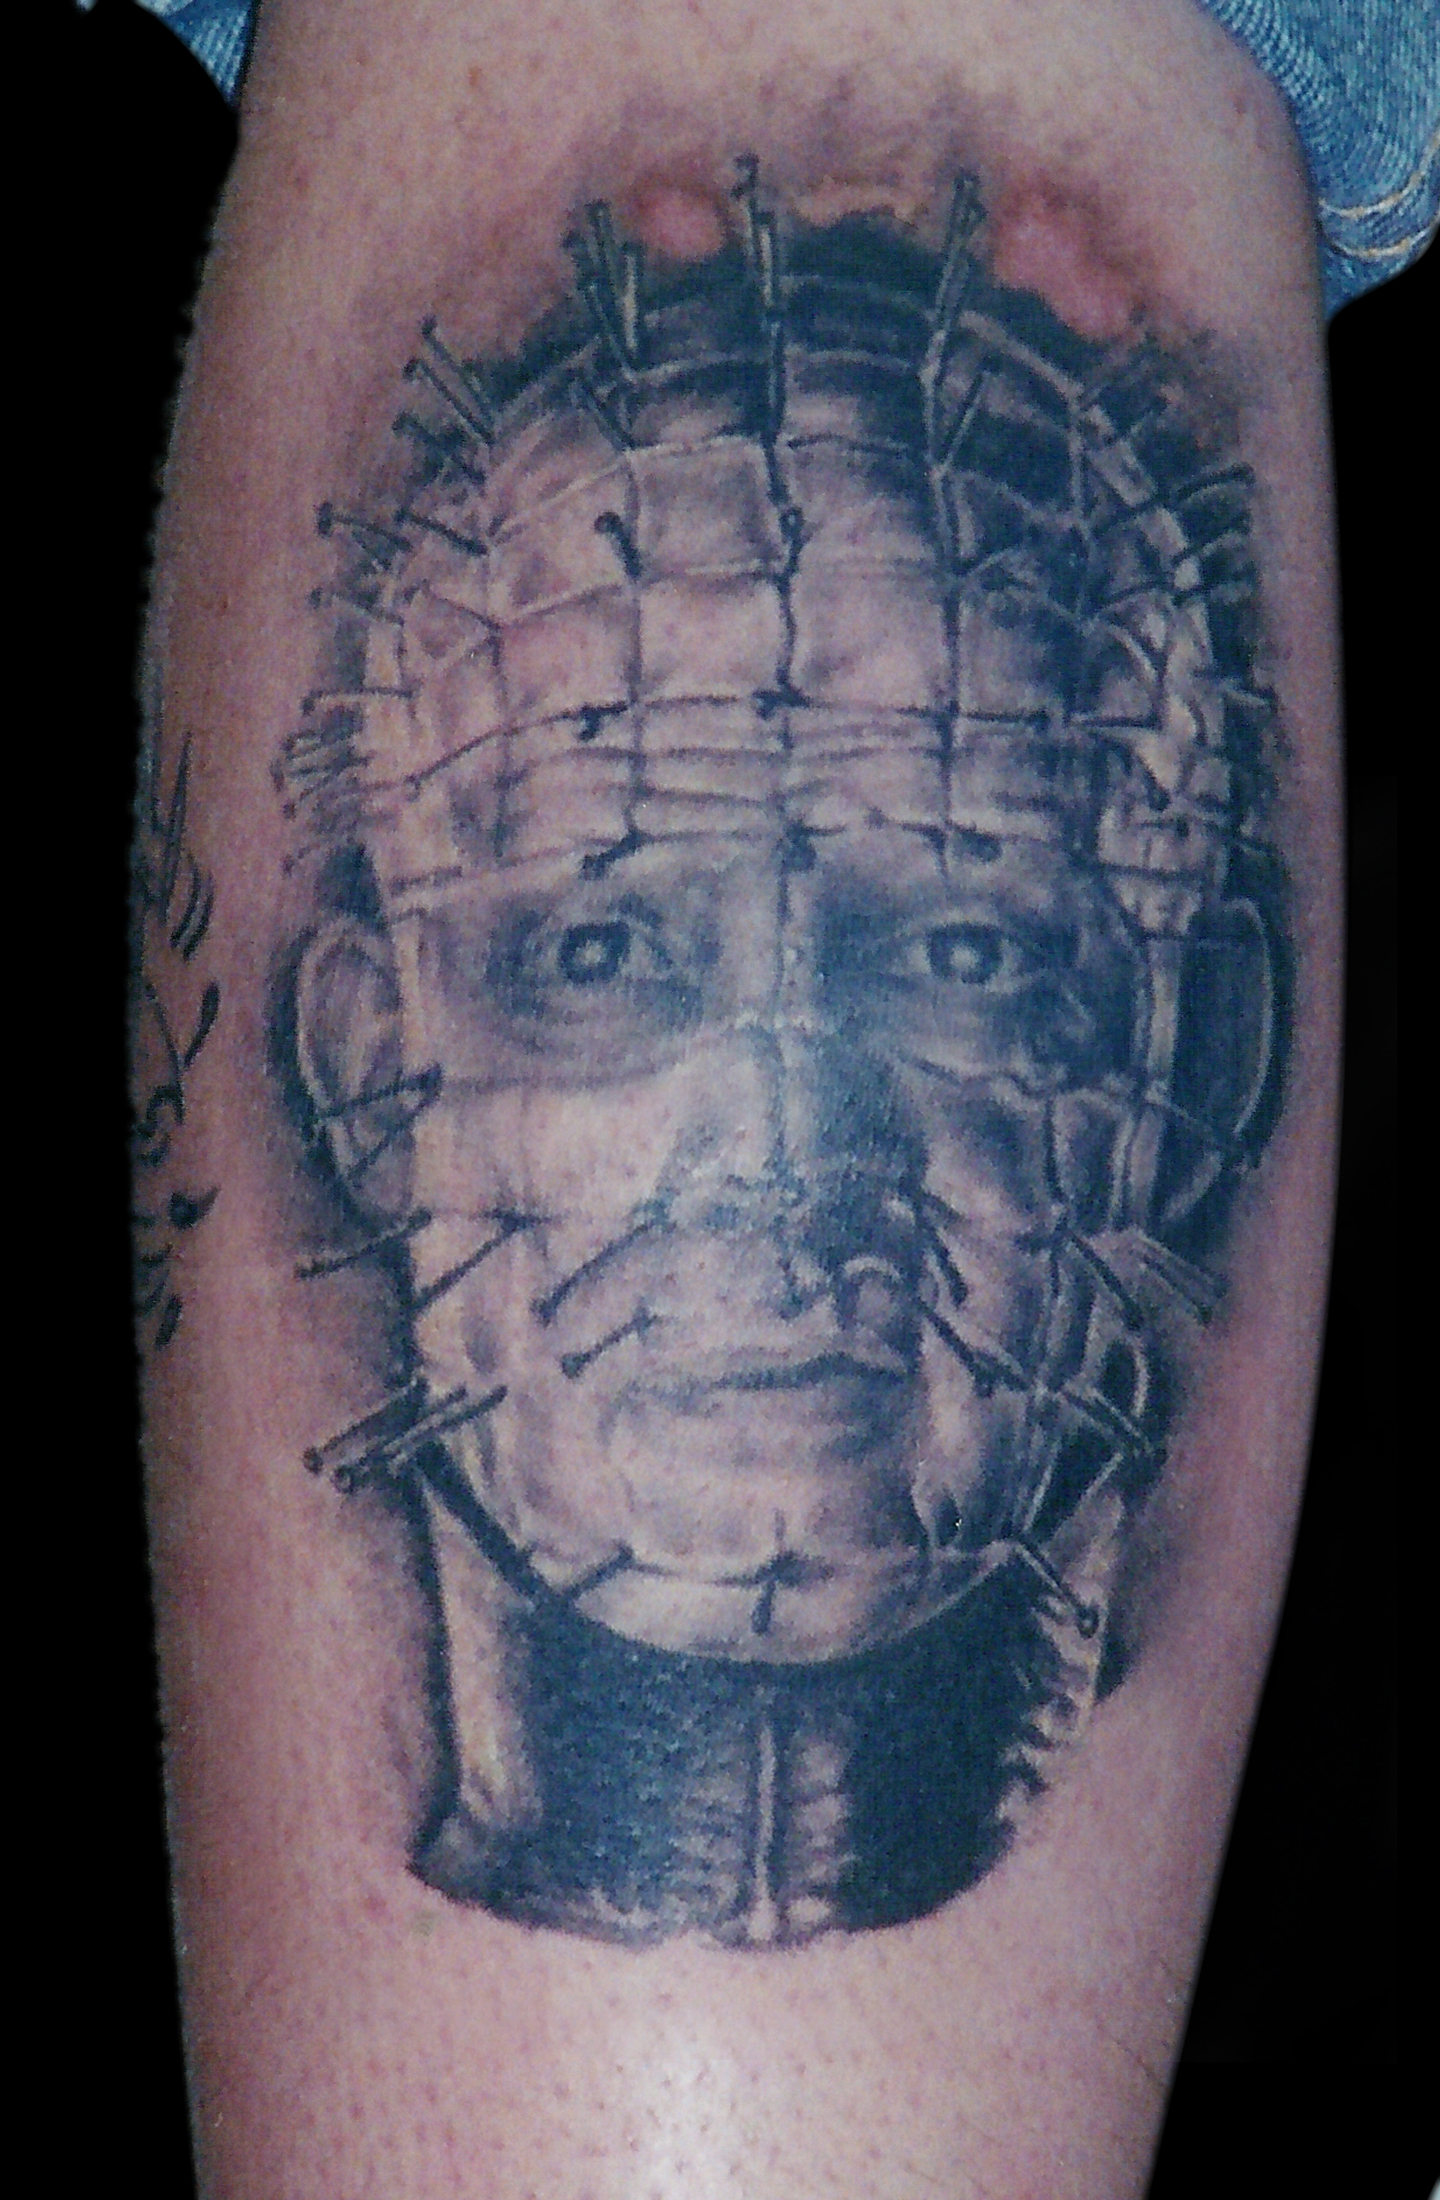 Black and Grey Portrait Tattoo of Pinhead from Hellraiser, (healed) tattooed in 2001